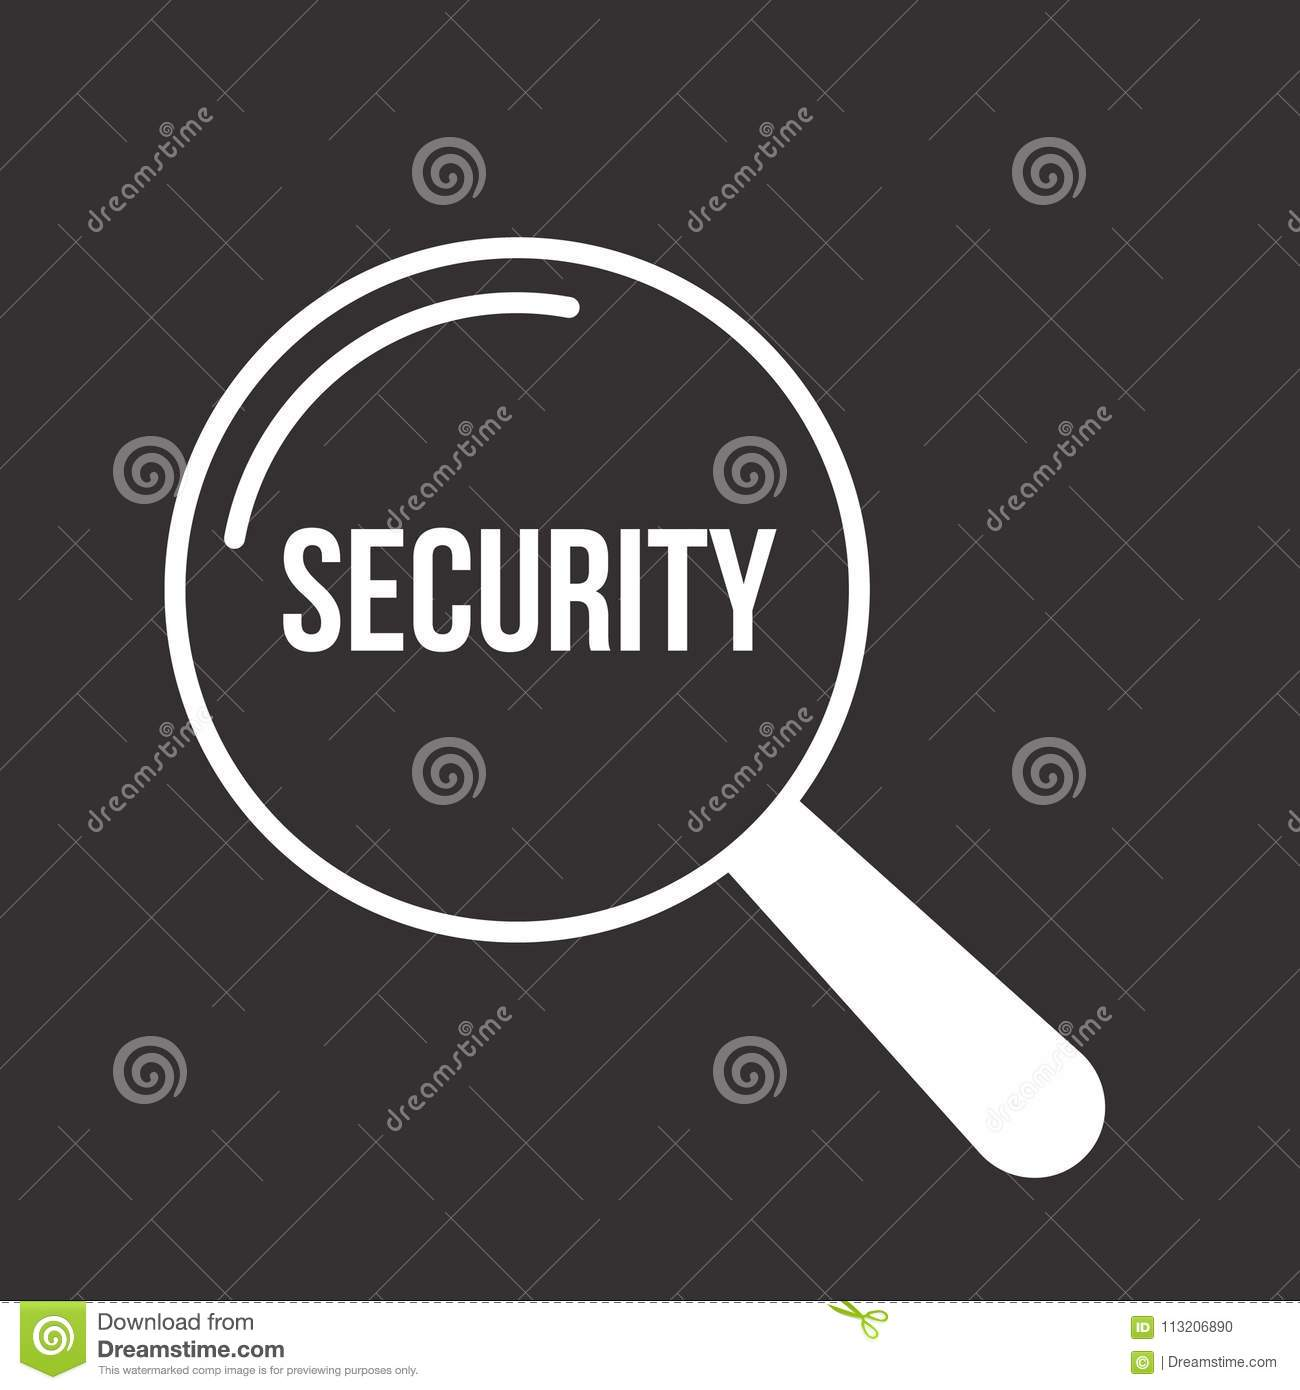 Security Word Magnifying Glass Stock Vector Illustration Of Safety